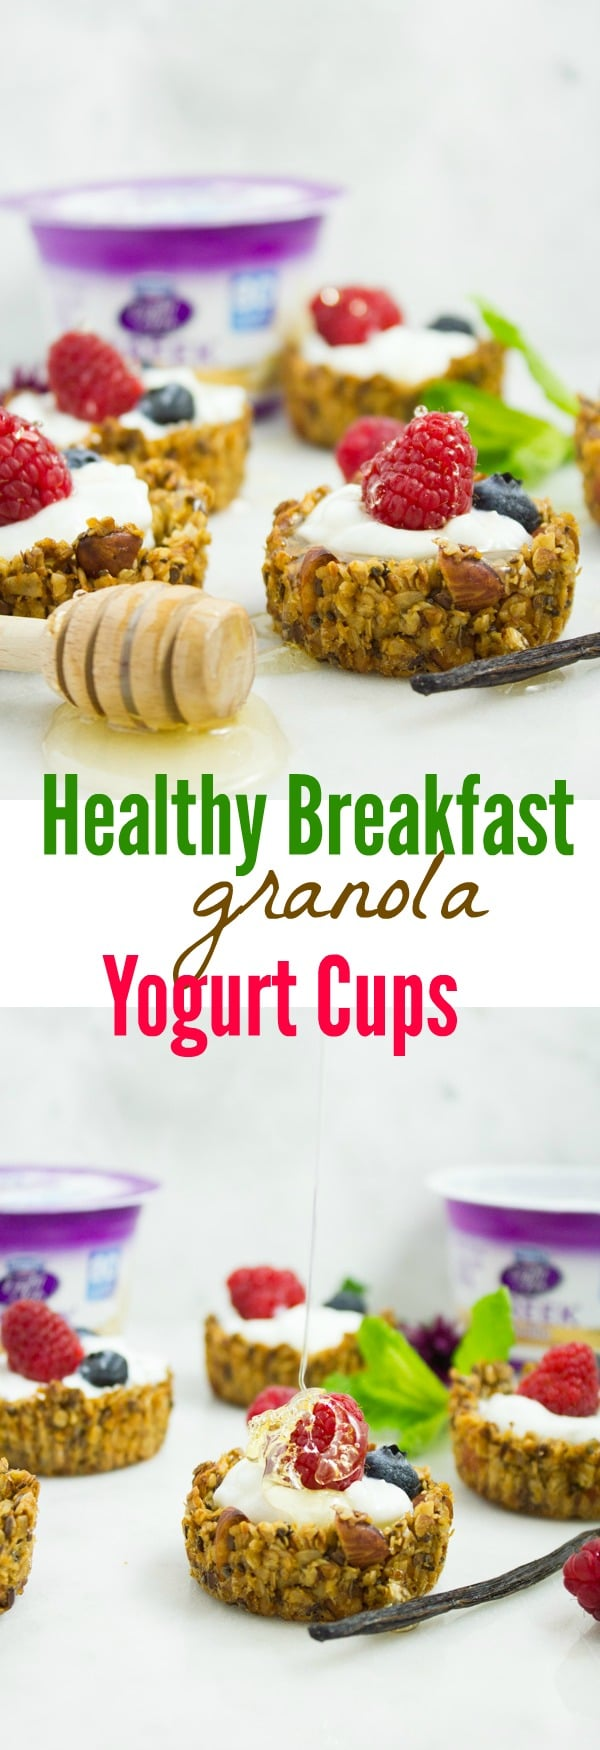 Healthy Breakfast Granola Yogurt Cups | What better way to start your day than with these cute homemade Breakfast Granola Cups filled with creamy Greek Yogurt and topped with your favorite fruits and nuts! A healthy yet decadent bite sized breakfast treat your whole family will LOVE! #brunch, #breakfast, #bitesized, #buffet, #yogurt, #healthy